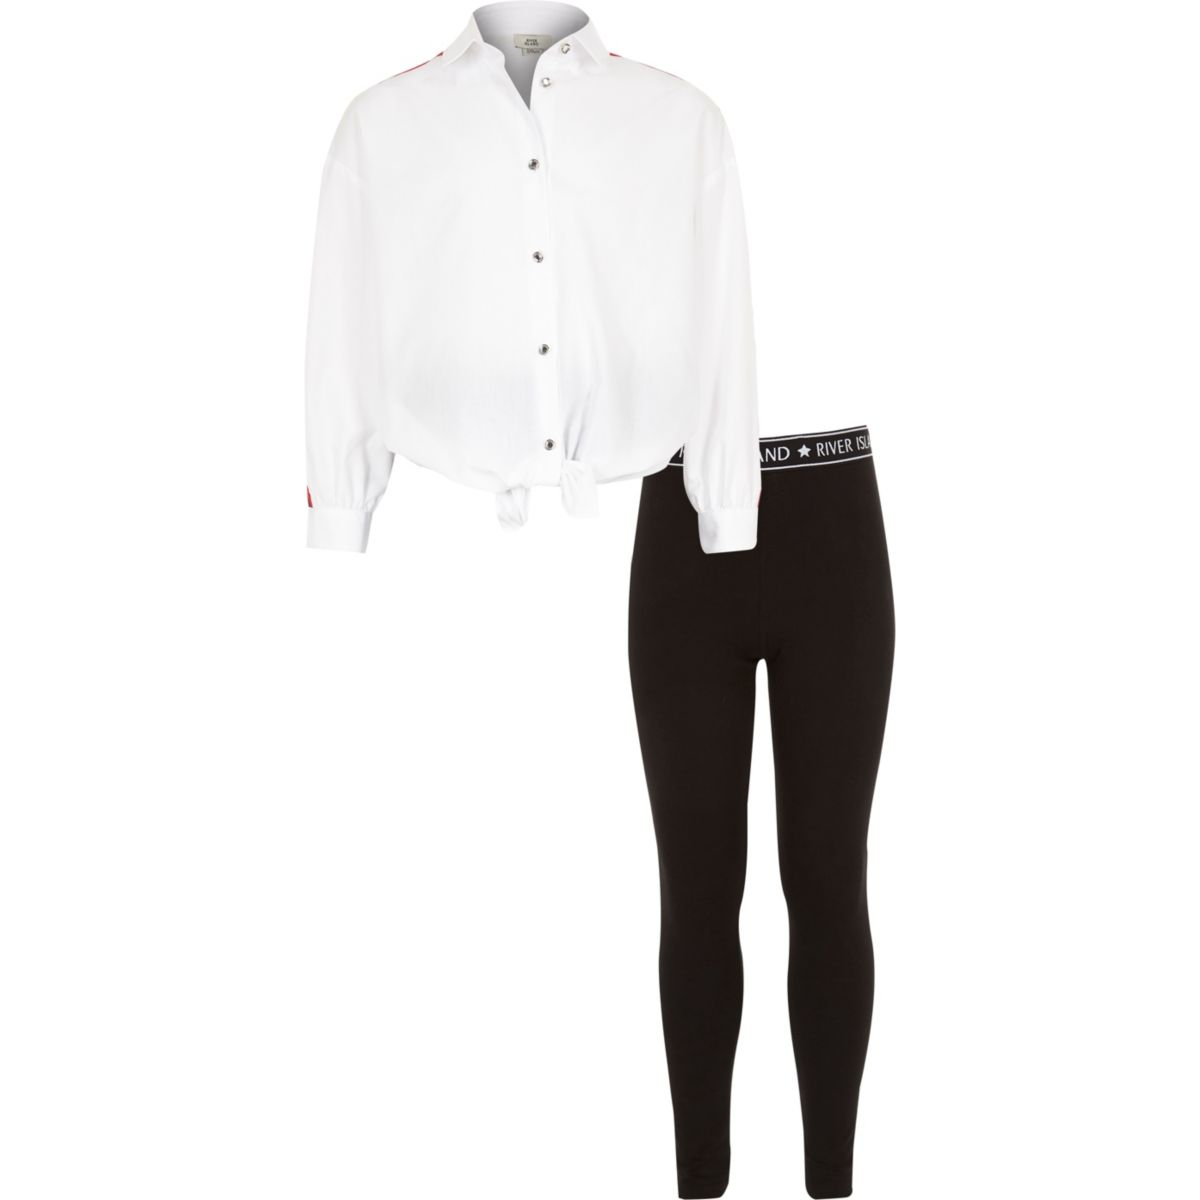 Girls white shirt and leggings outfit